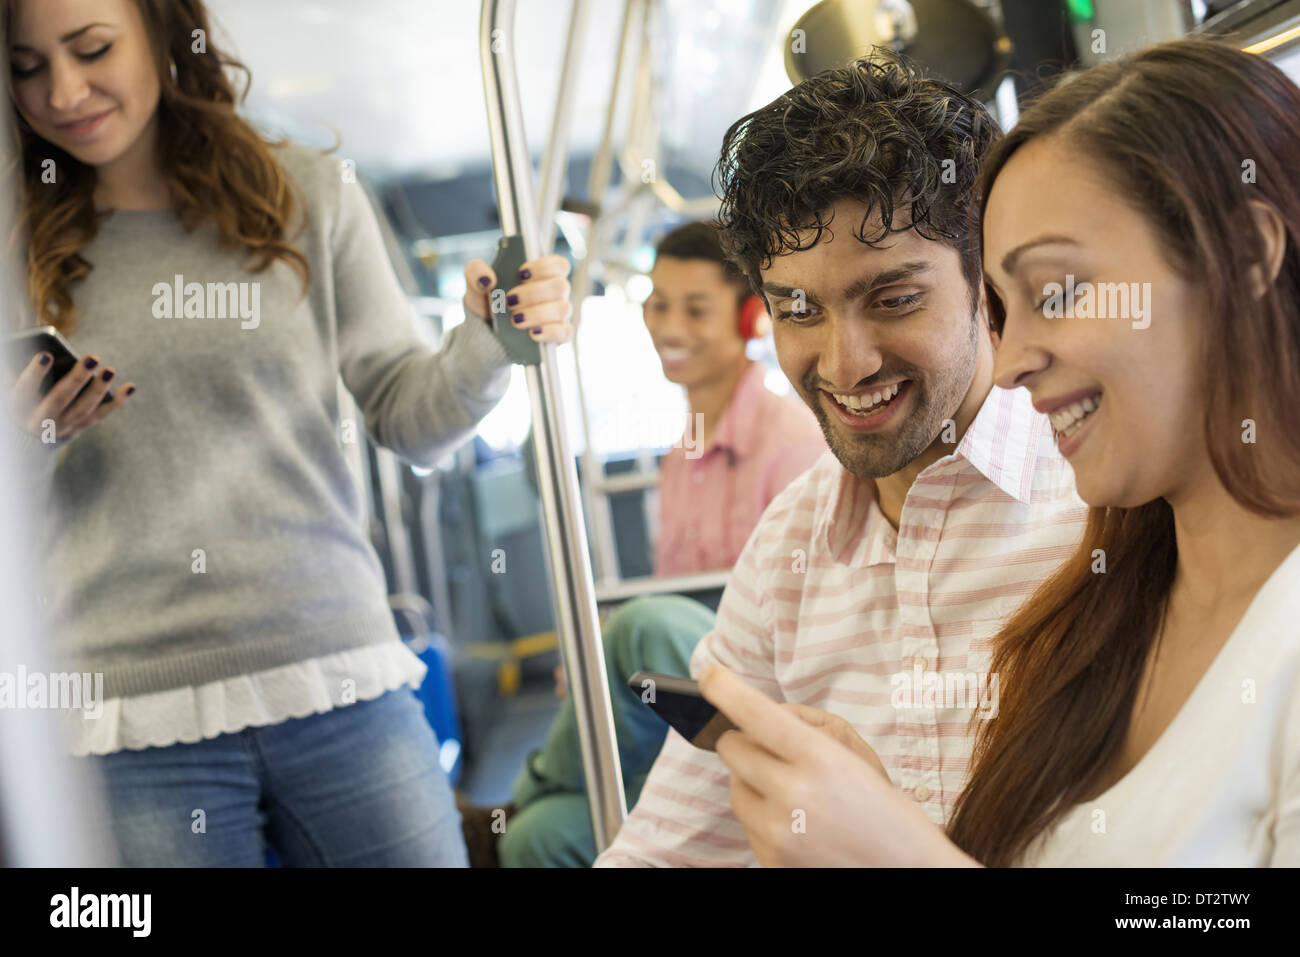 men and women on a city bus in New York city A man wearing headphones and a couple looking at a mobile phone Stock Photo